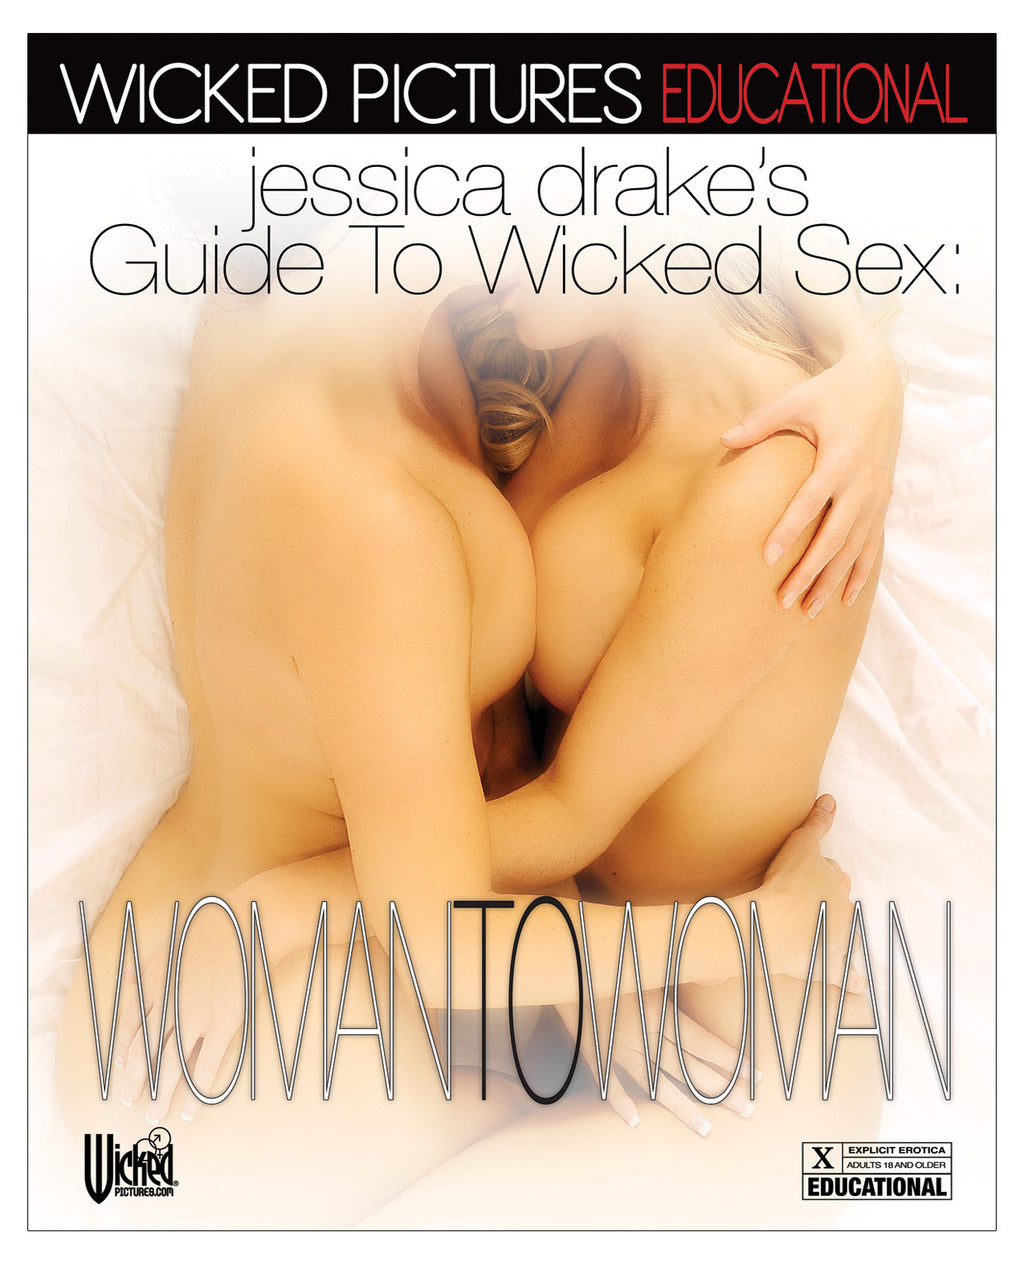 Jessica Drake's Guide to Wicked Sex - Woman to Woman - Dvd And Video Instructional - The Fallen Angel